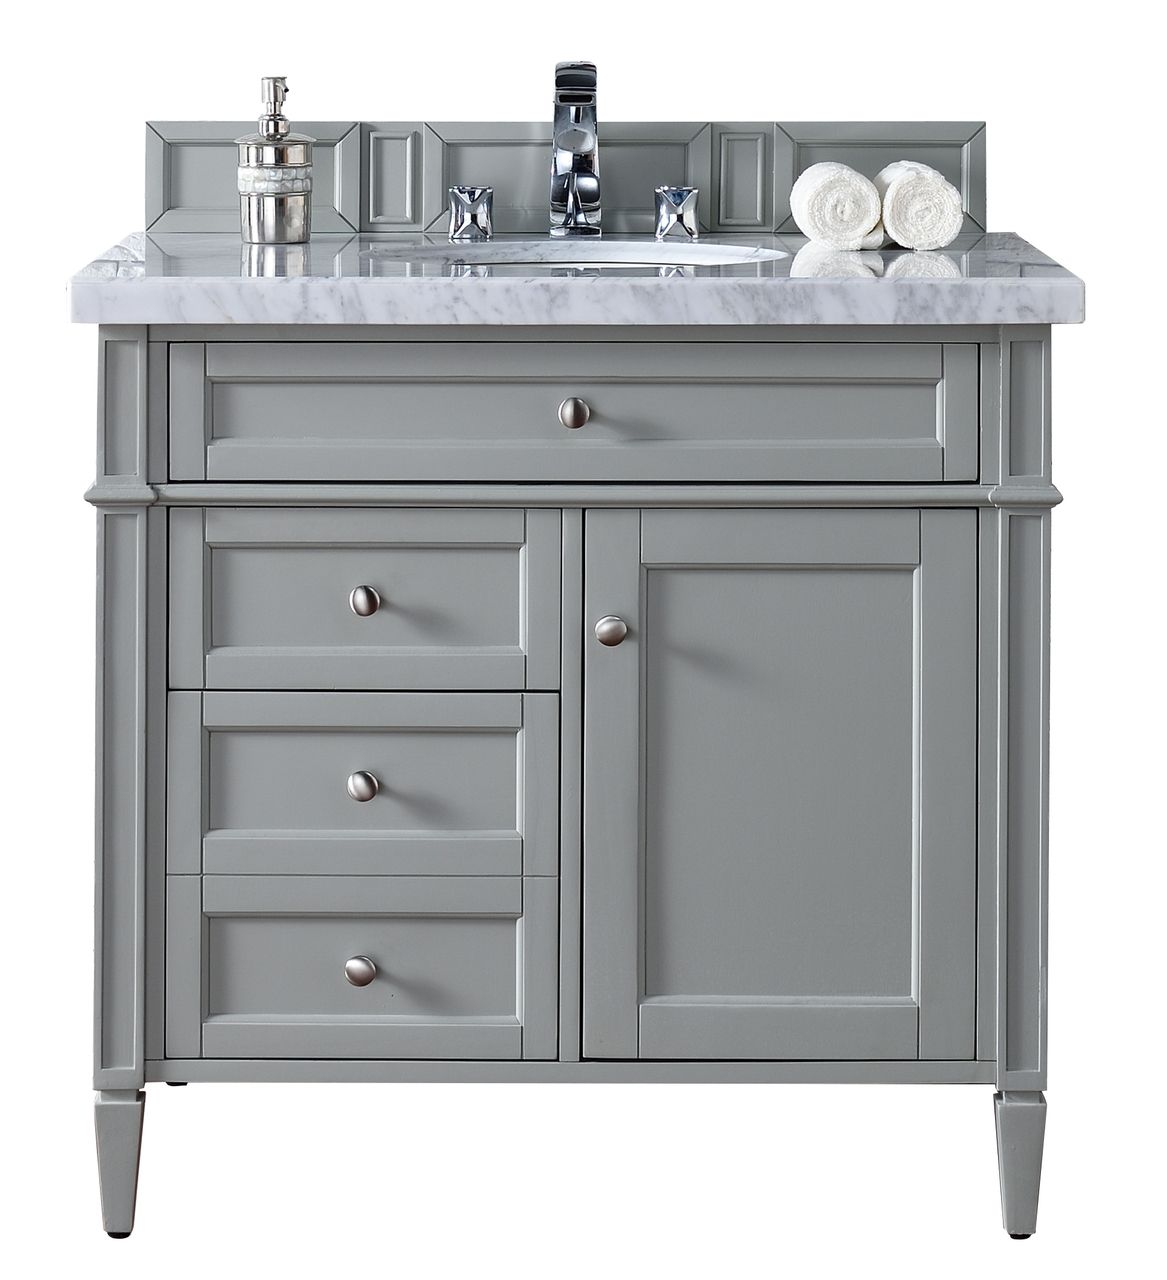 Brittany 36 Urban Gray Bathroom Vanity James Martin Ideas For The House Pinterest Grey